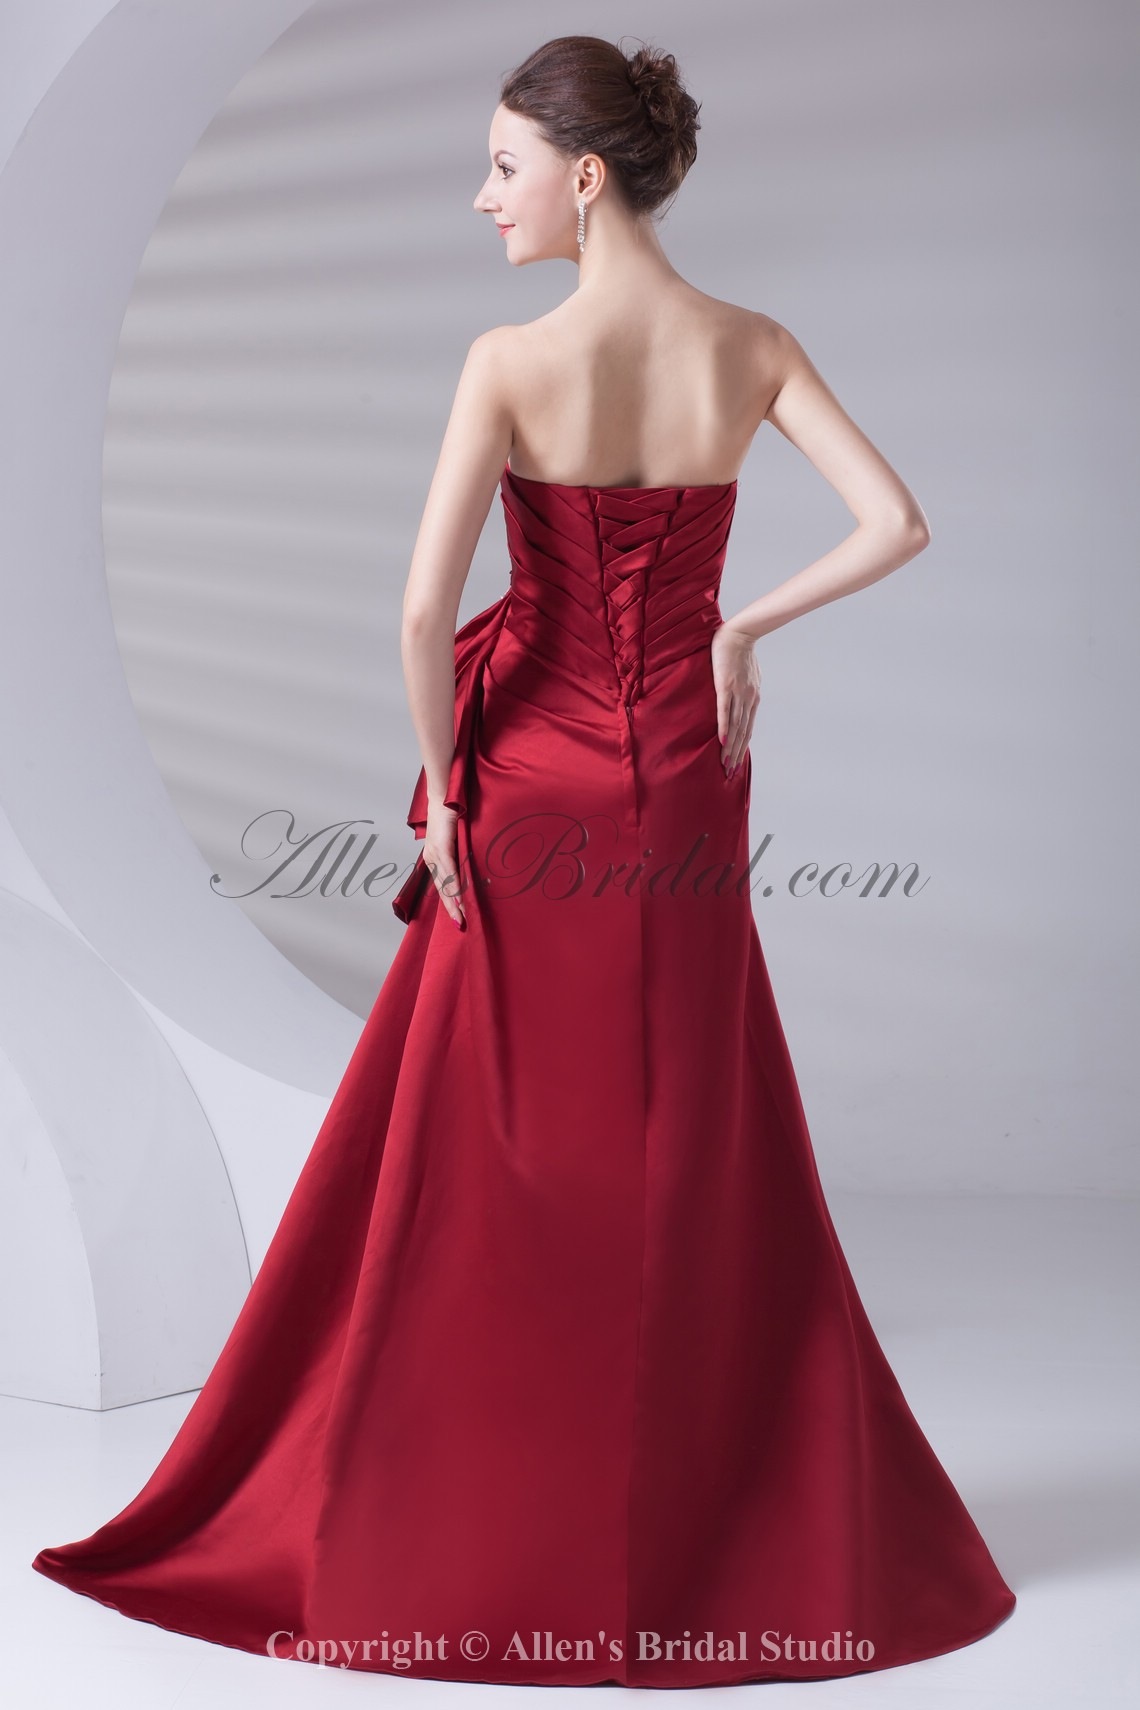 /401-3211/satin-strapless-a-line-floor-length-ruched-prom-dress.jpg